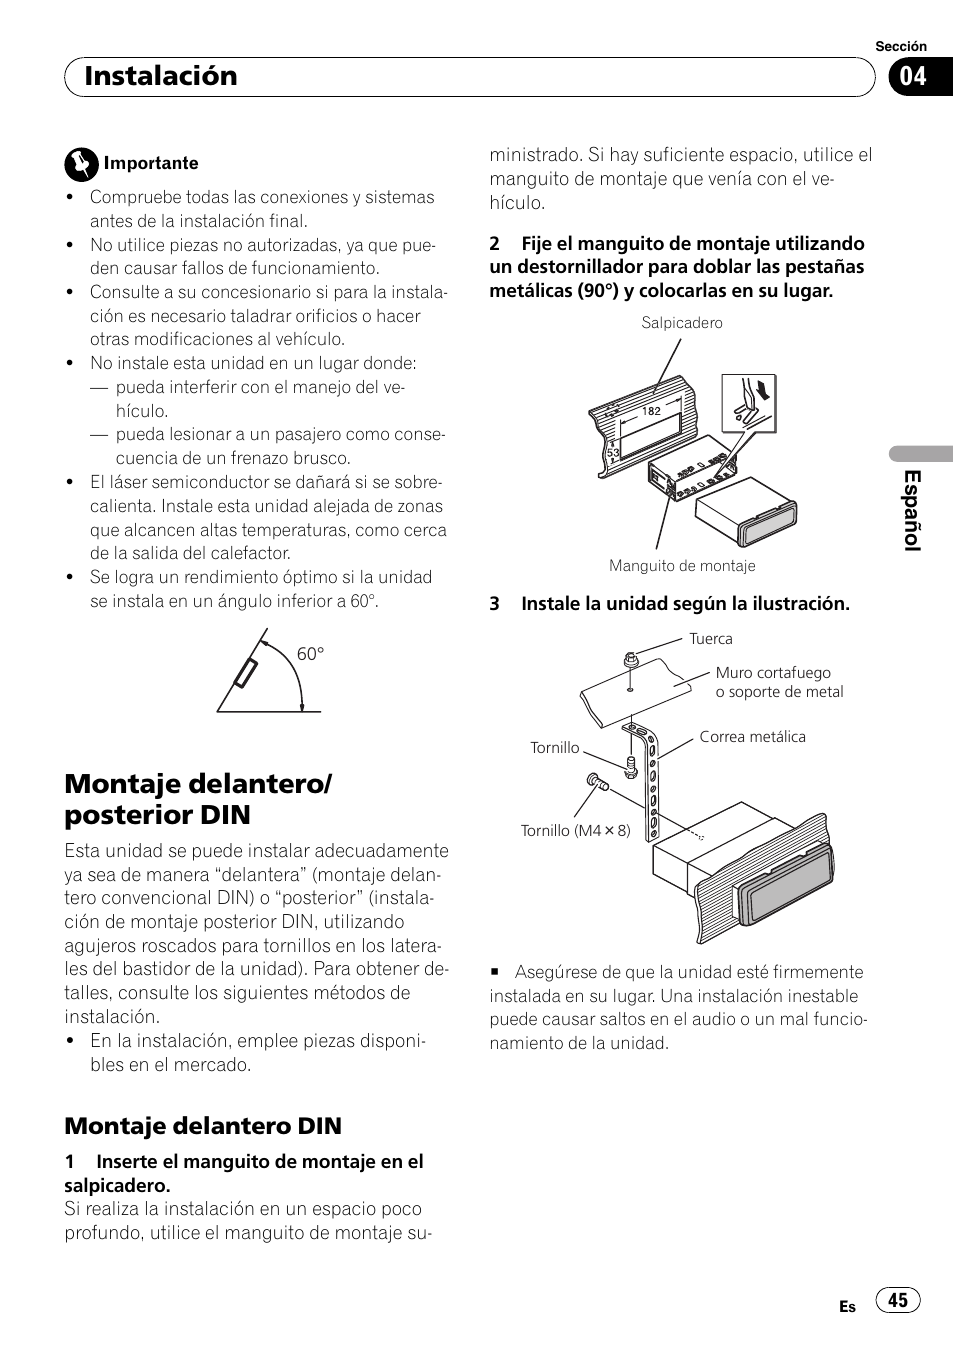 Que Significa Wiring Diagram En Espanol Diamond Paradise Pioneer Deh 1200mp 1200 User Manual Data Diagrams